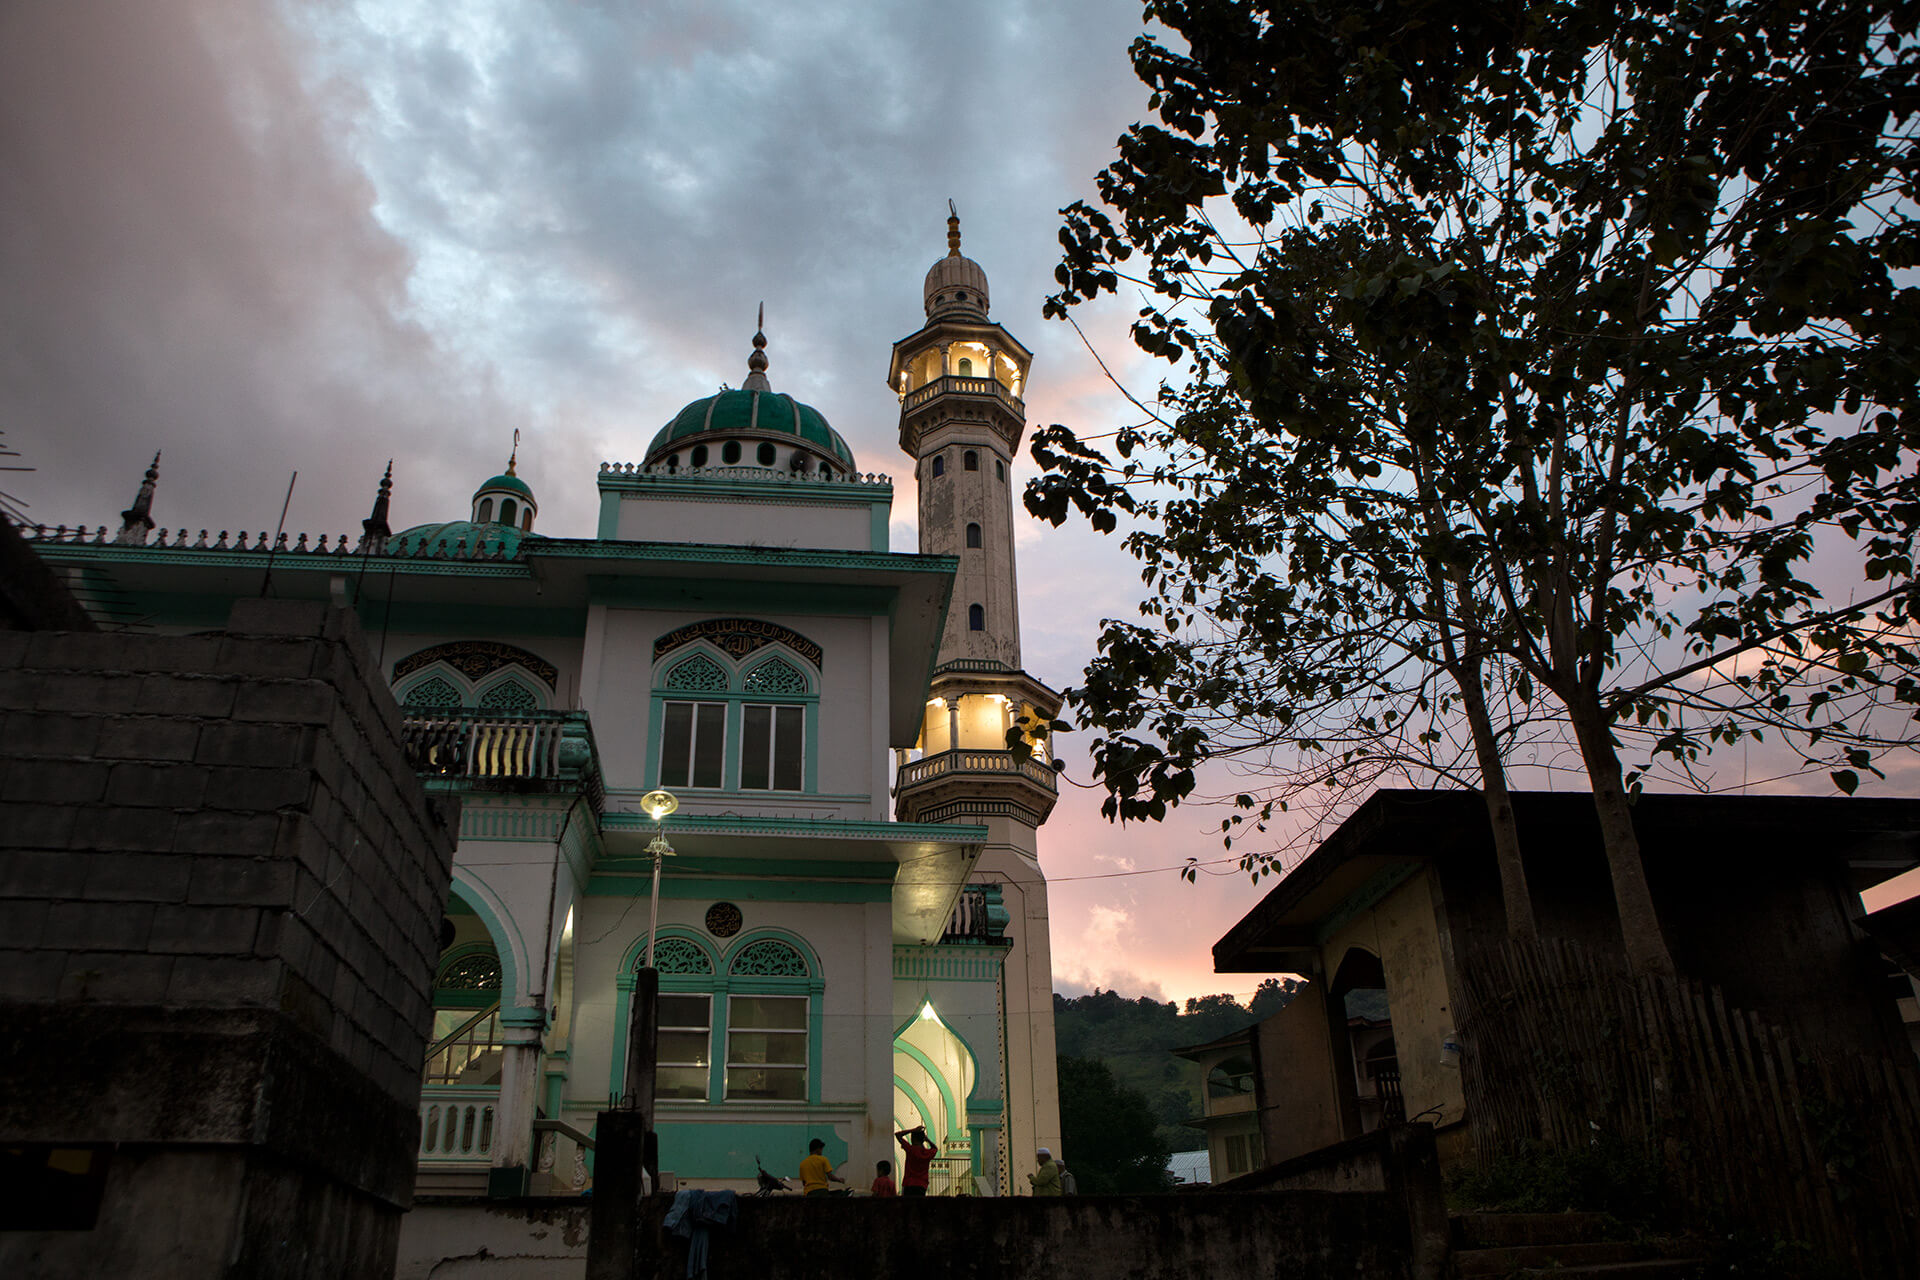 The exterior of the Dalliman Central Masjid was built by Tugaya's own craftsmen.